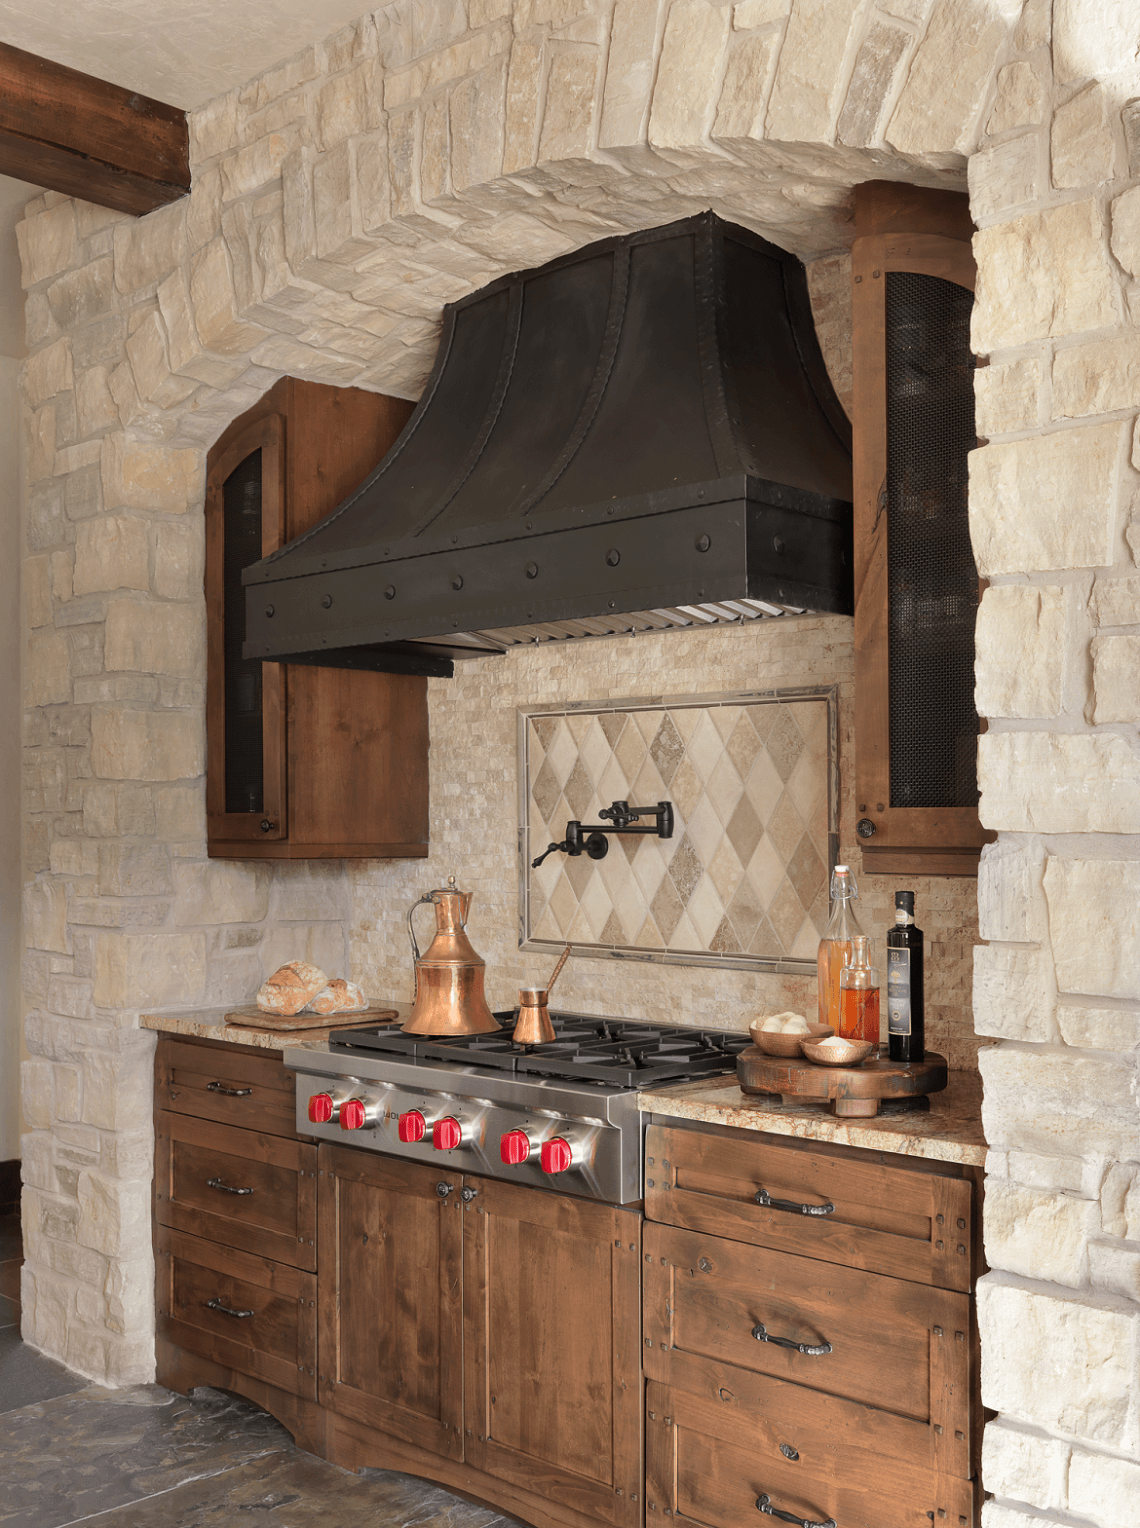 Rustic Kitchen Custom Range Hood